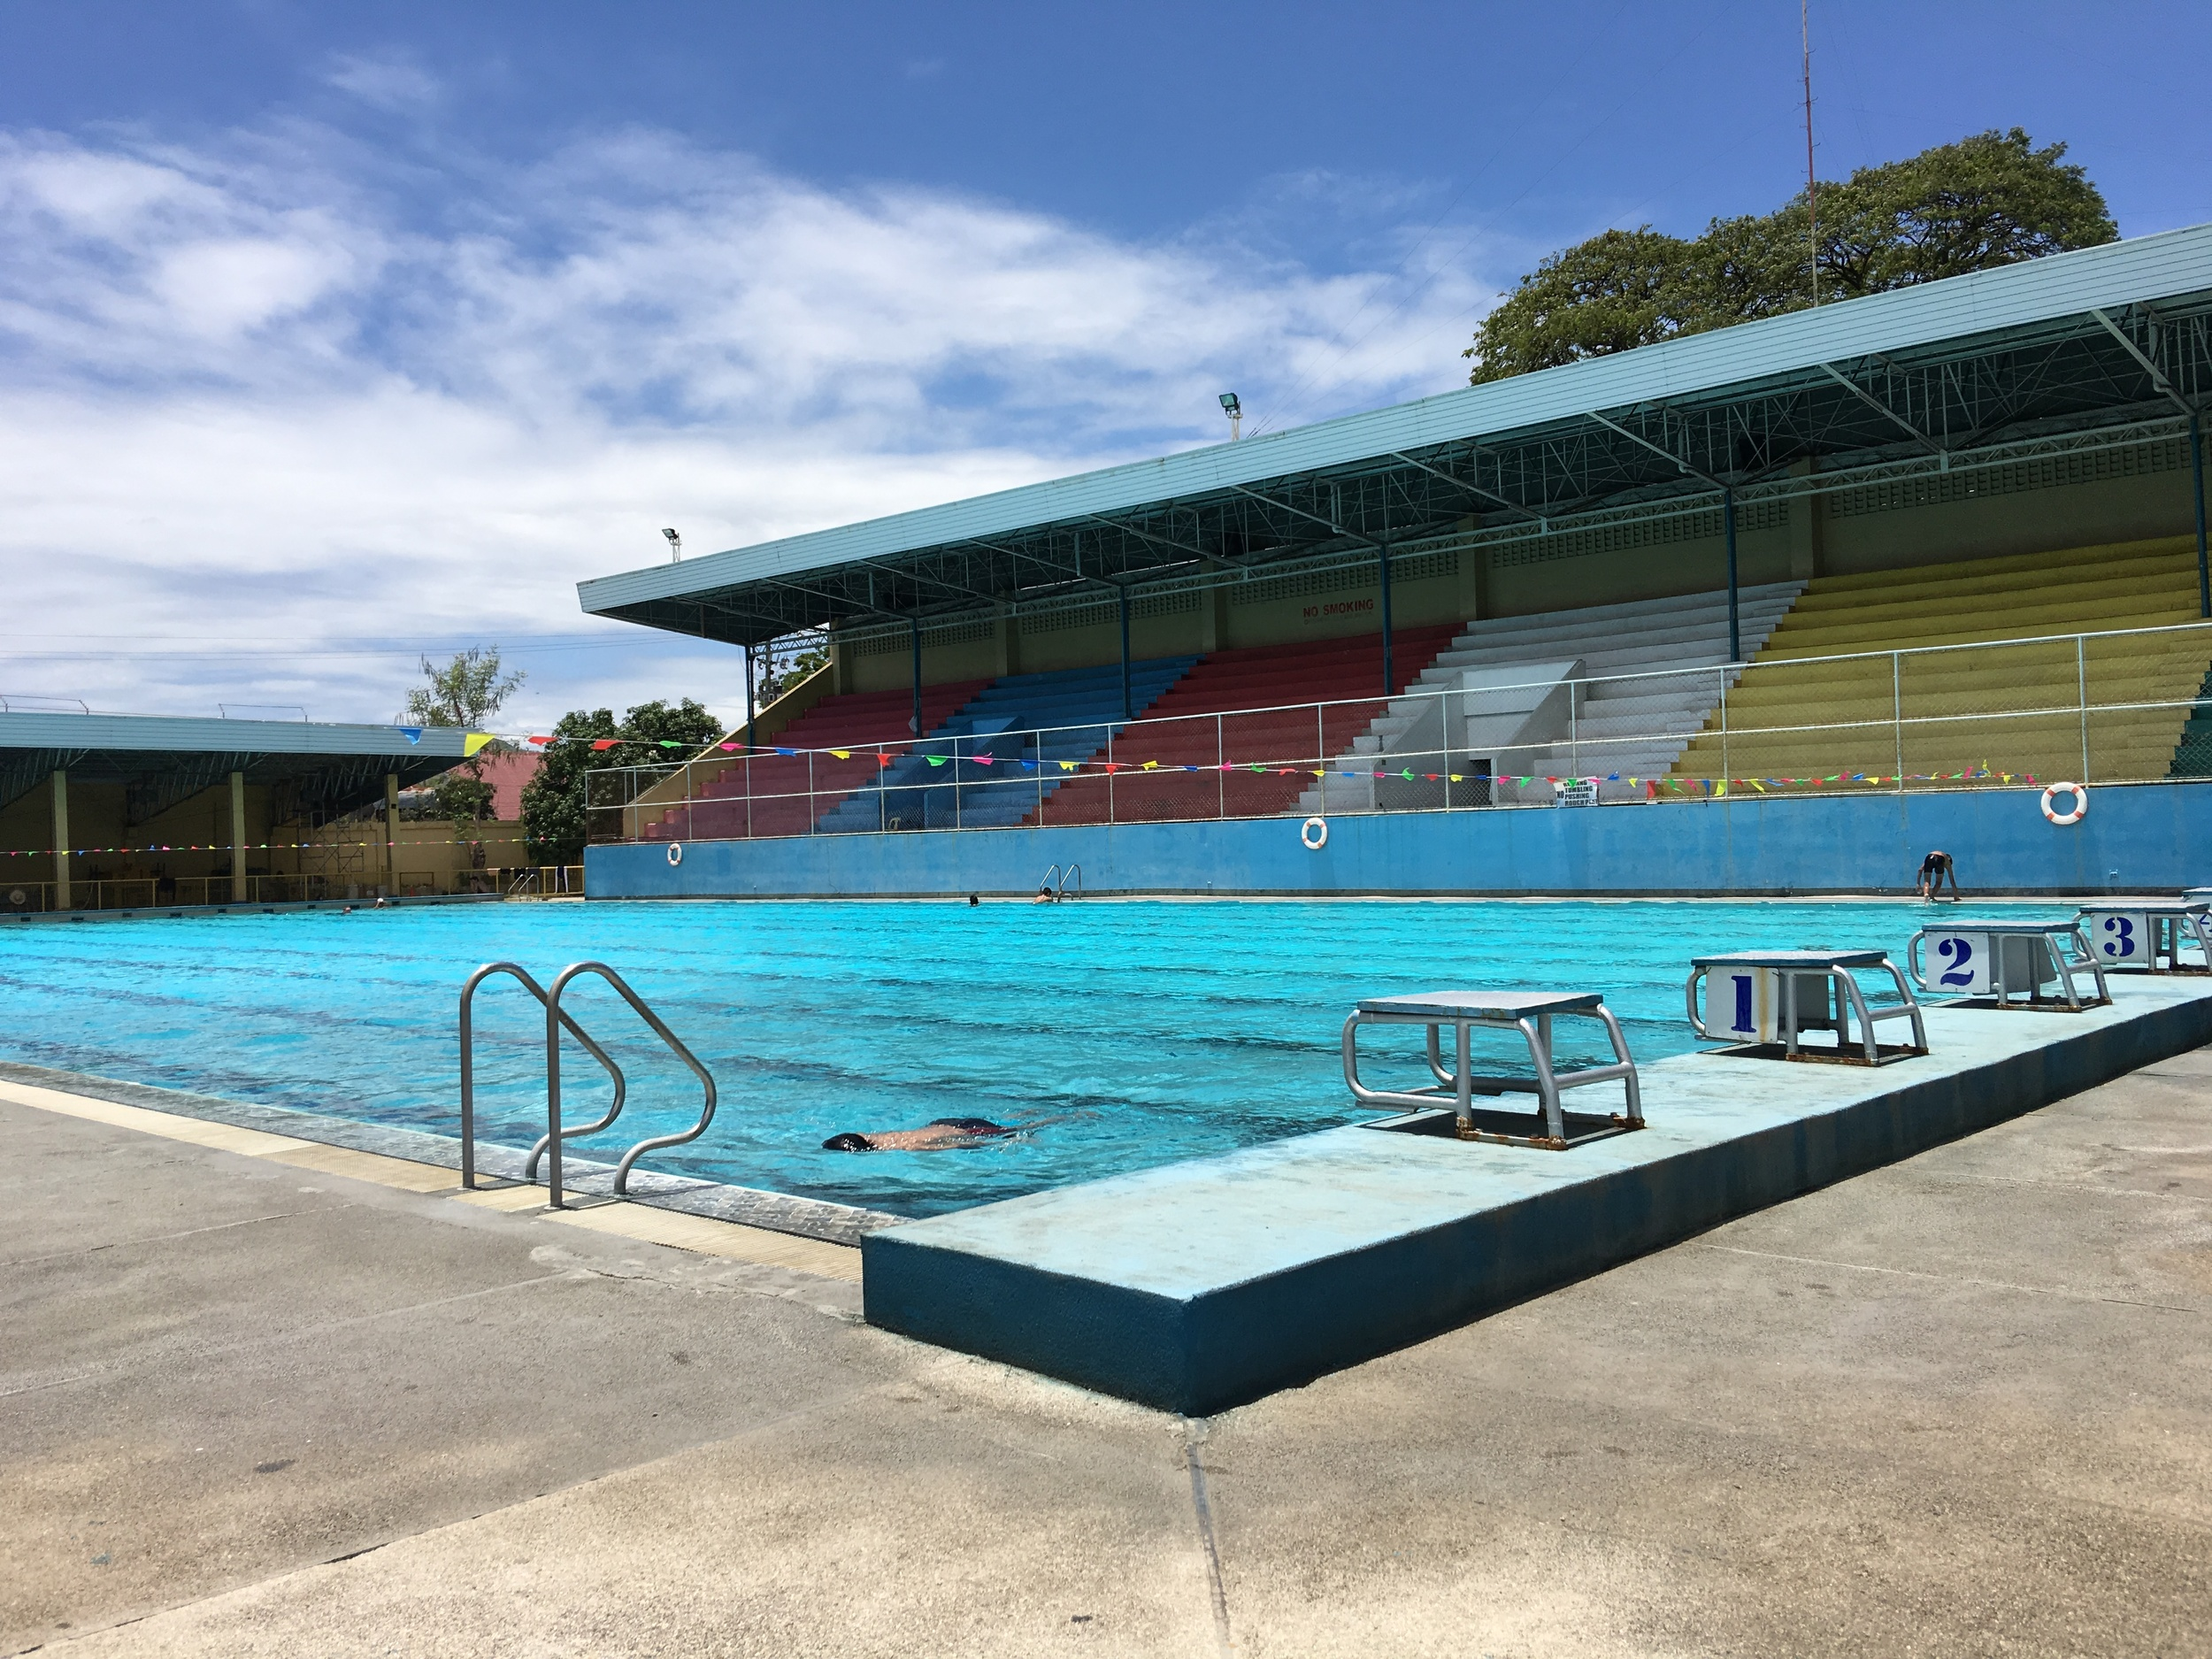 Lap pool, Cebu City Sports Complex (Abellana)